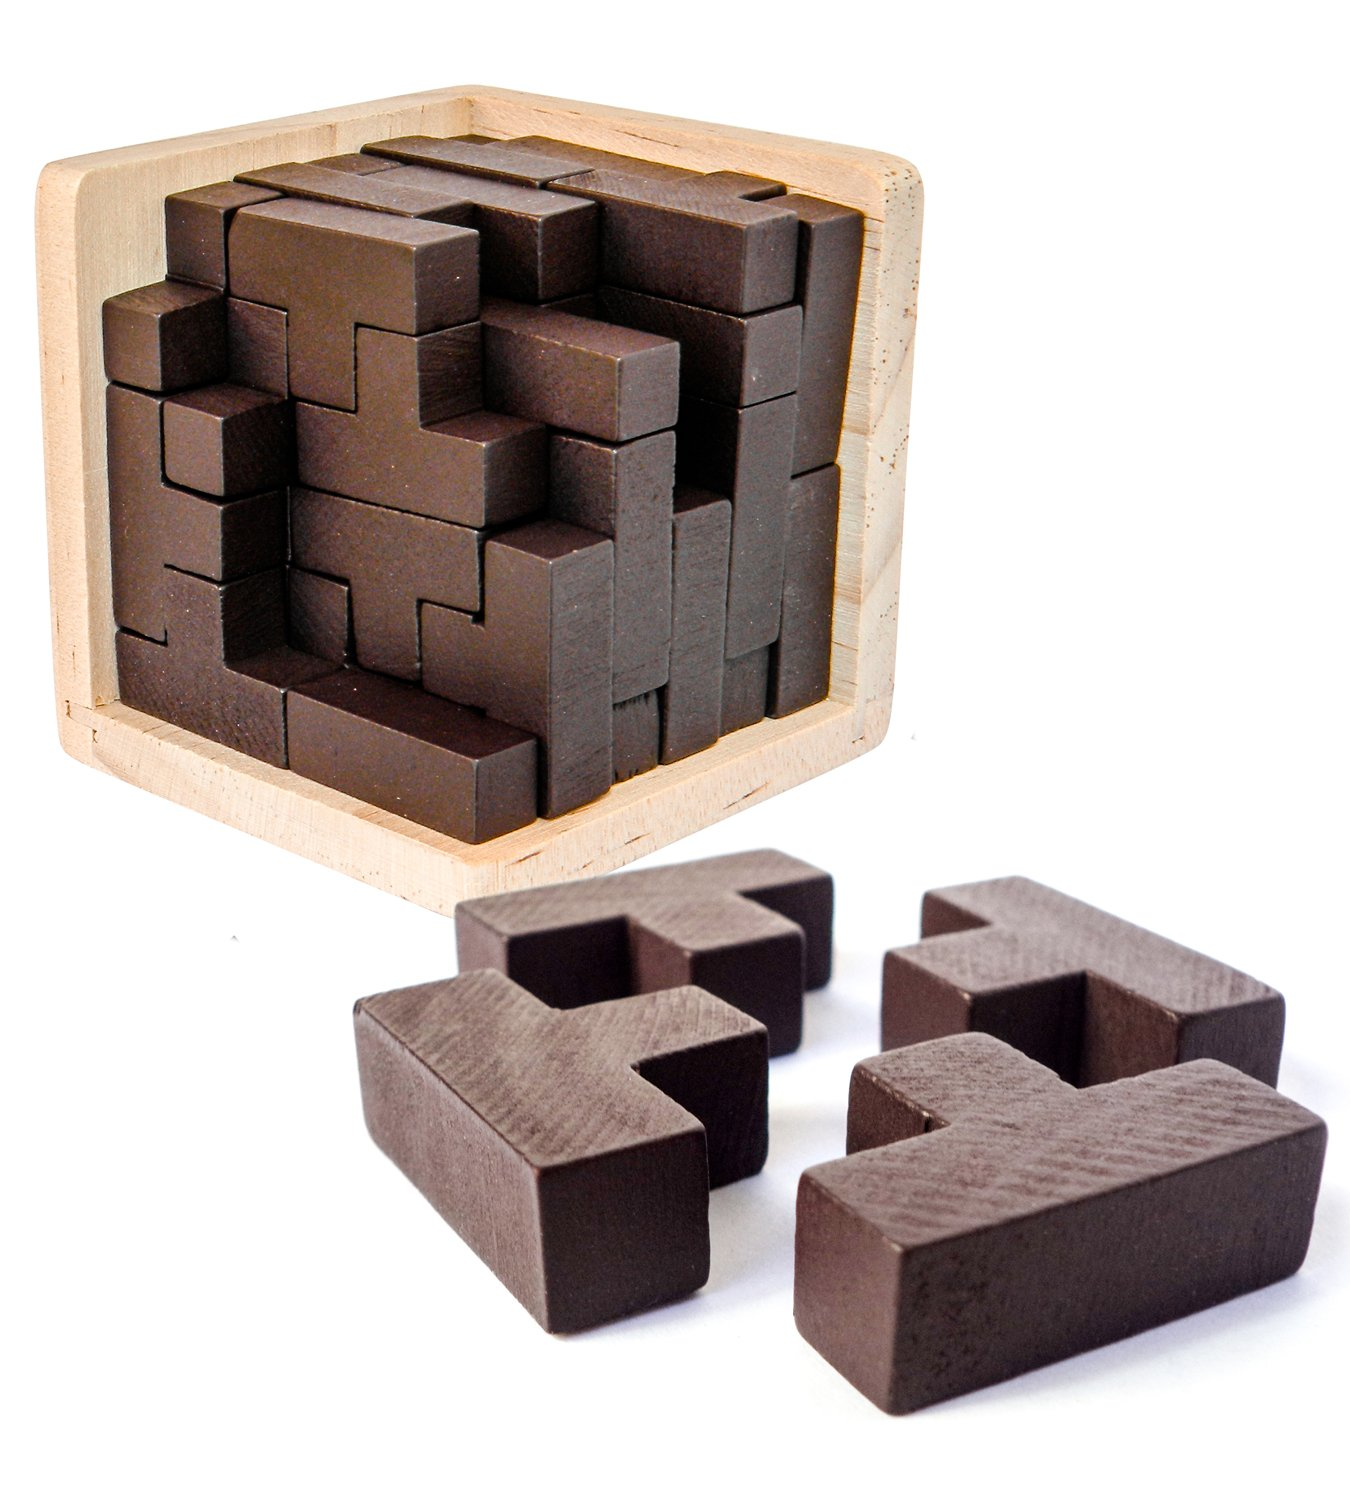 3D Wooden Brain Teaser Puzzle by Sharp Brain Zone. Genius Skills Builder T-Shape Pieces with Tetris Fit. Educational Toy for Kids and Adults. Explore Creativity and Problem Solving. Gift Desk Puzzles by Sharp Brain Zone